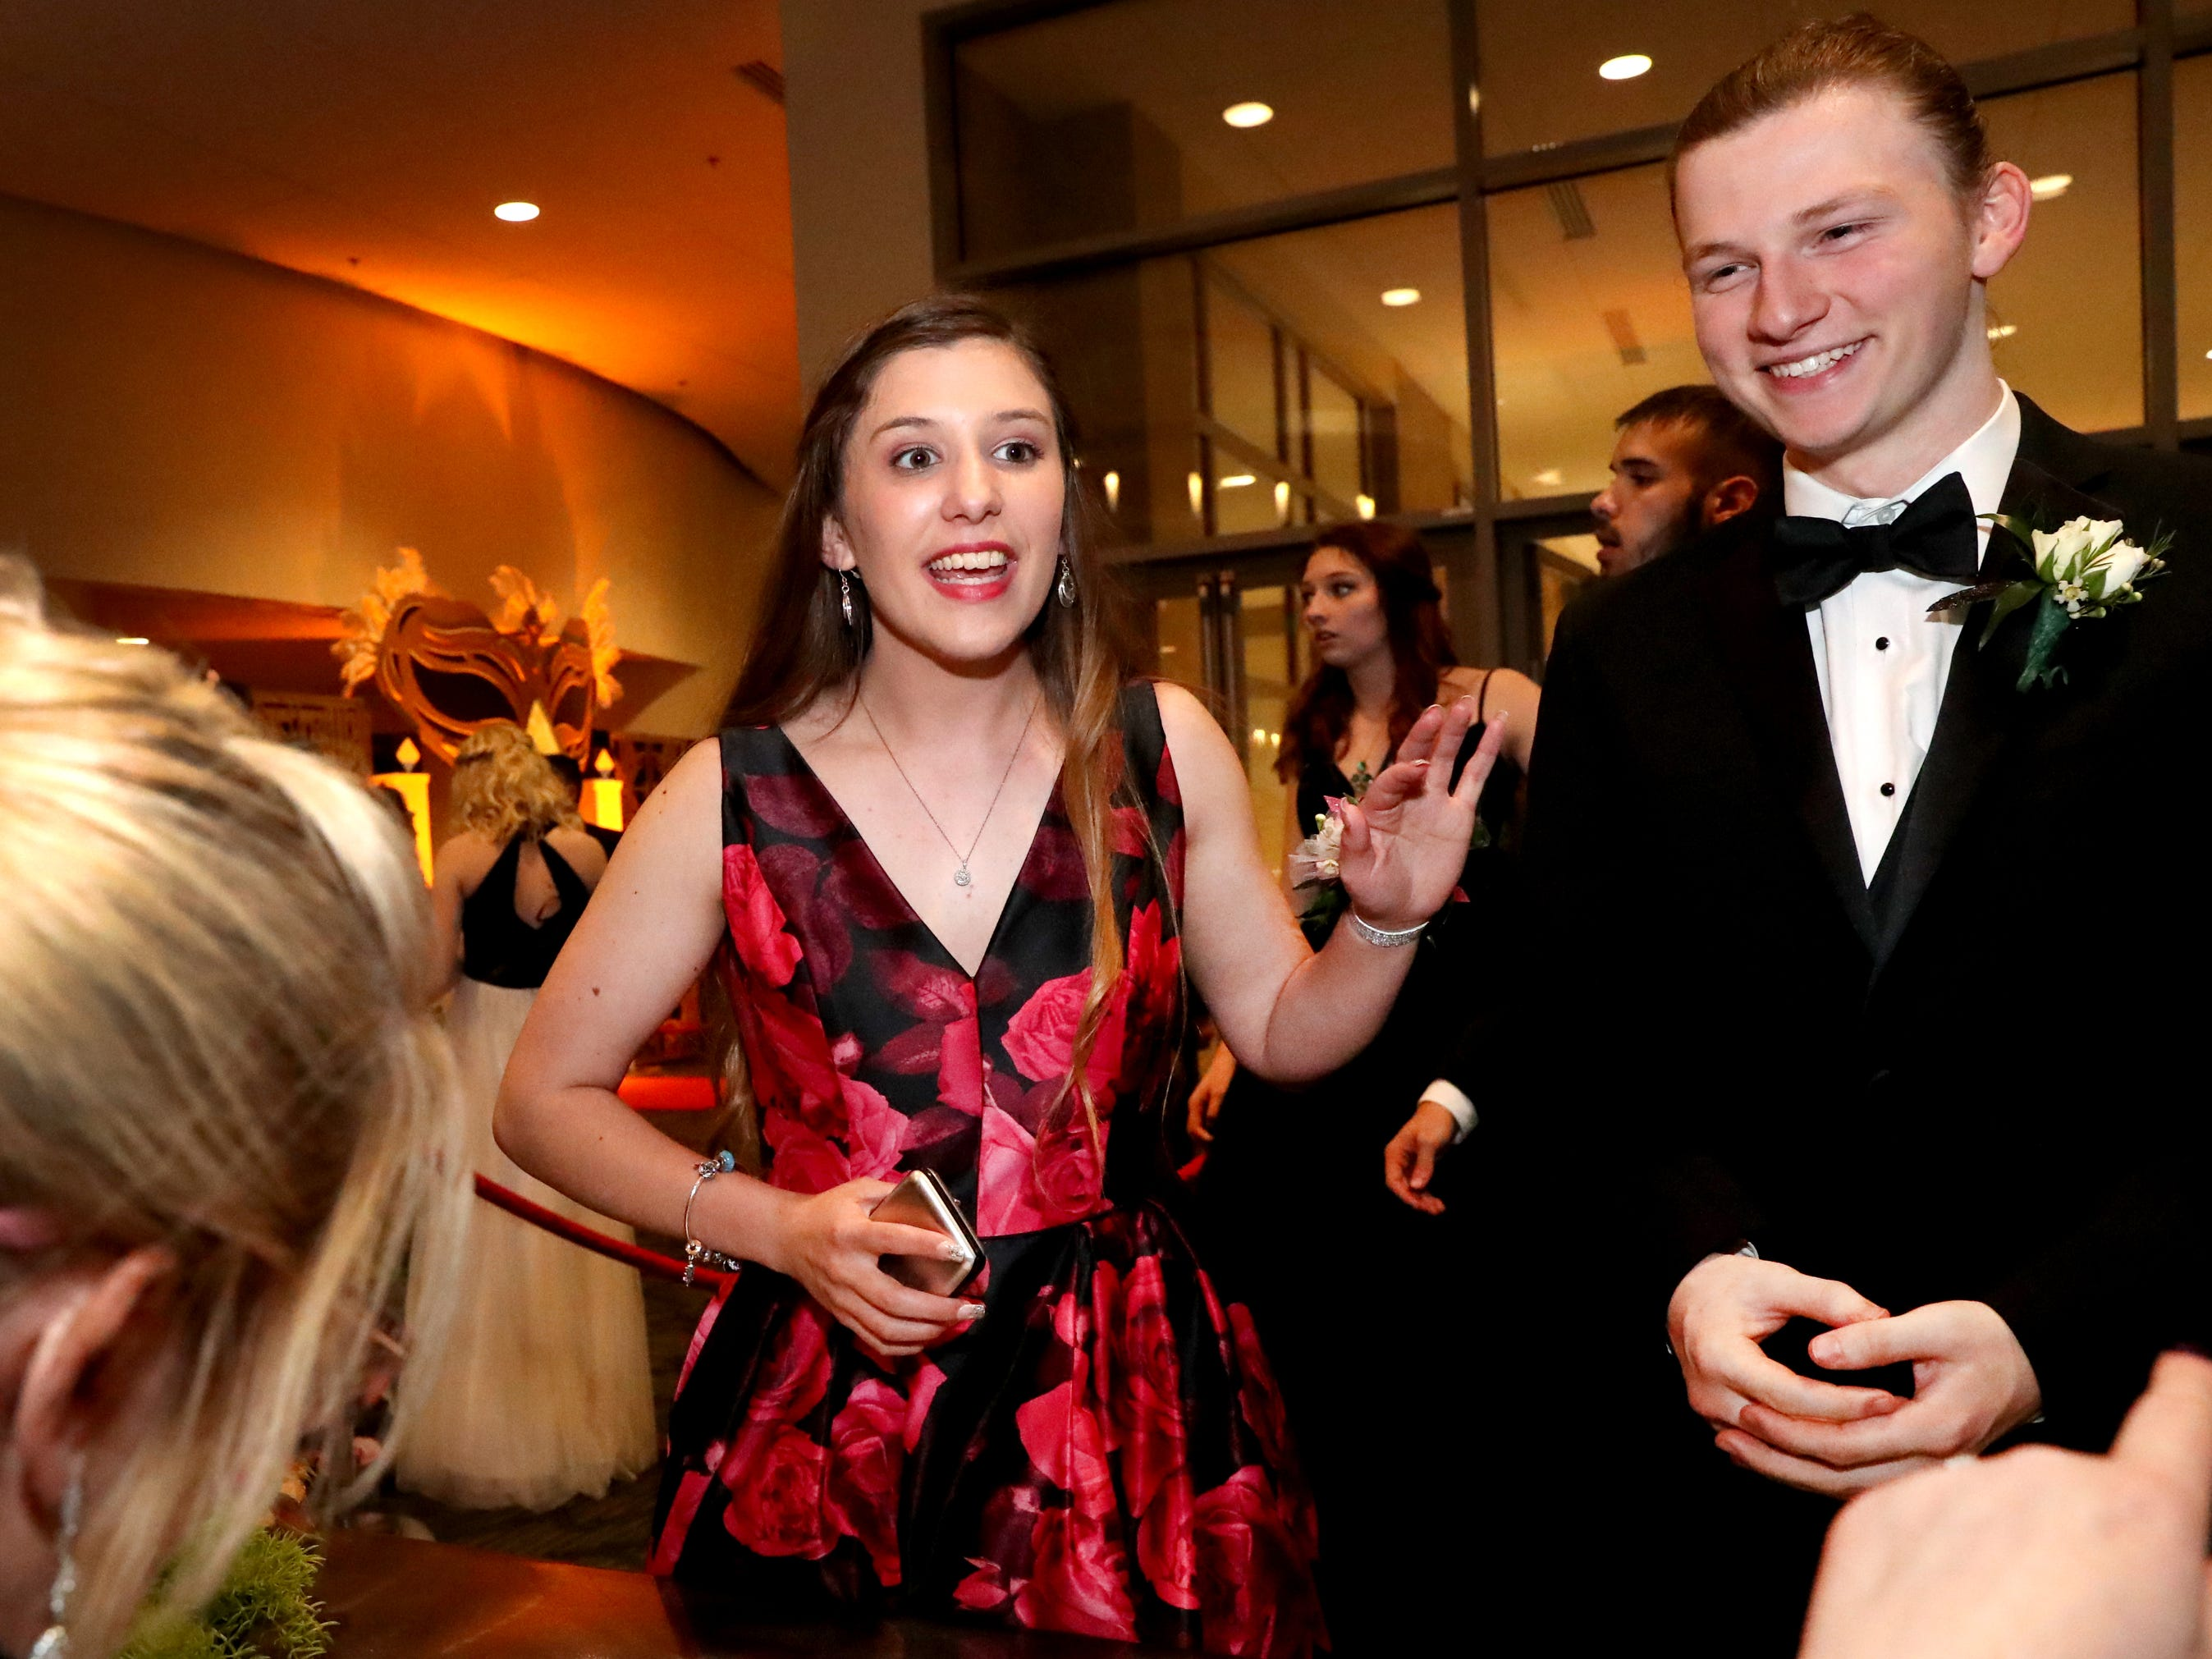 Rachel Blair, left and Micah Curtis, right  check in as they enter Blackman's prom on Friday April 12, 2019, at MTSU.